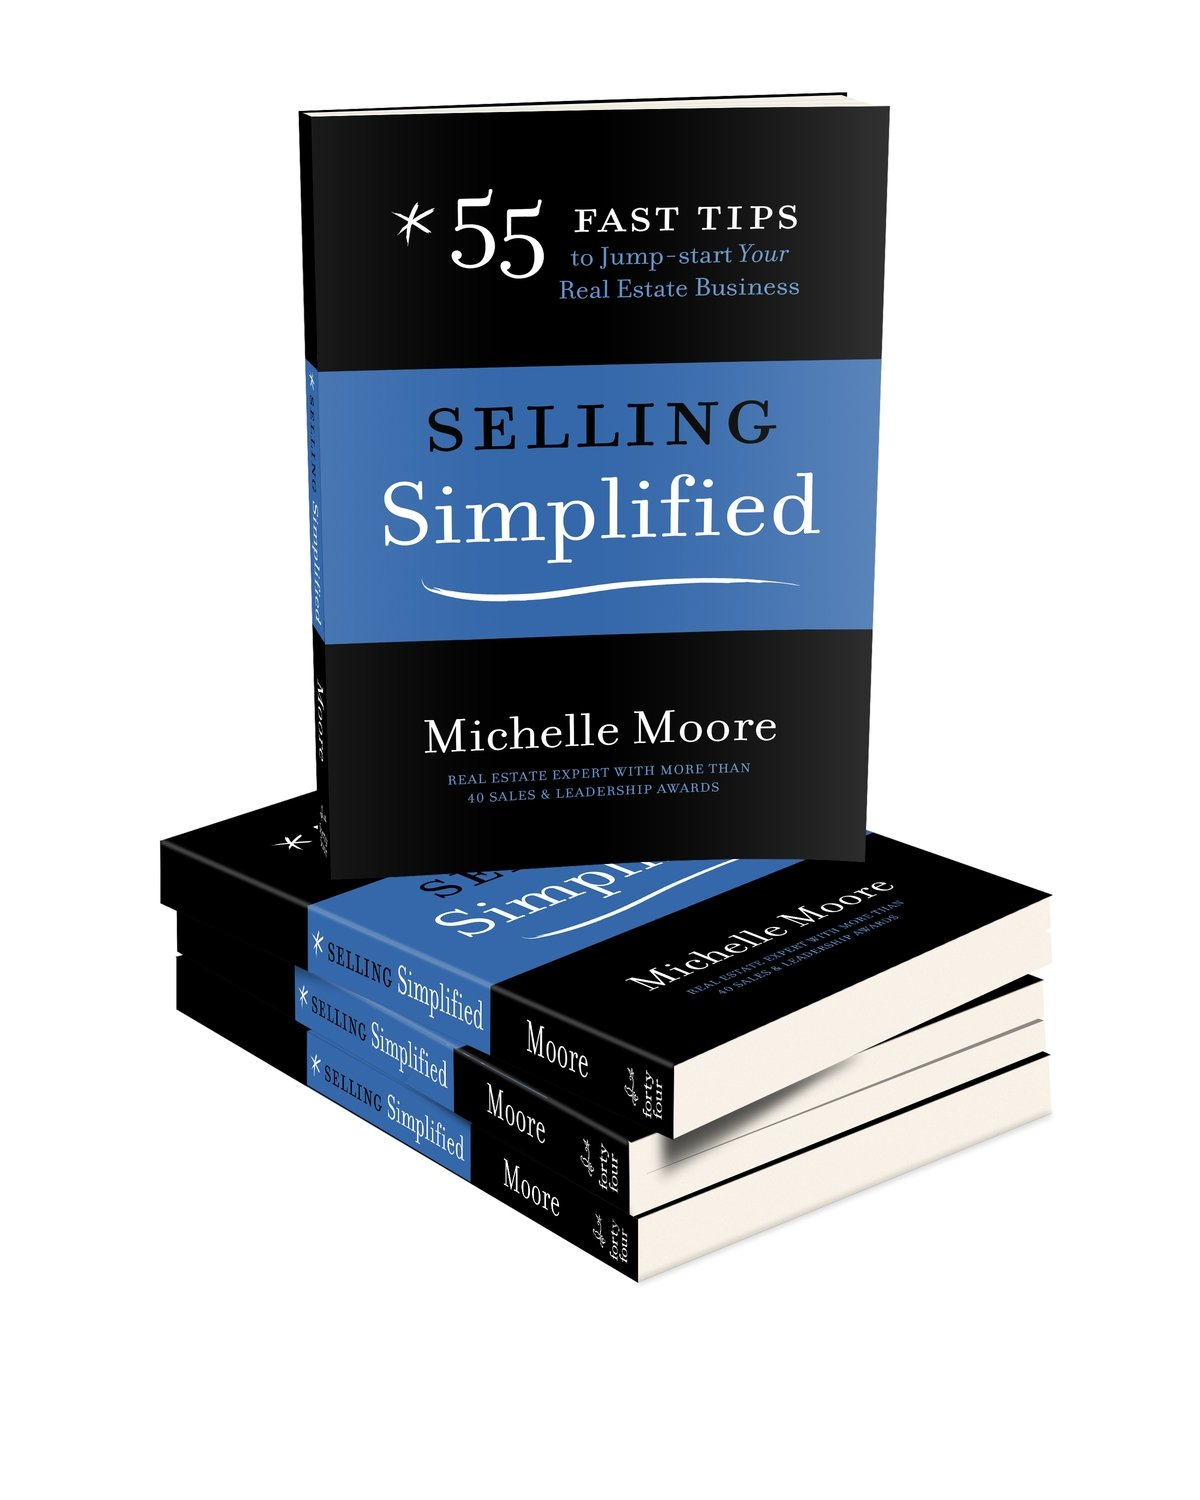 Selling Simplified: 55 Fast Tips to Jump-start Your Real Estate Business